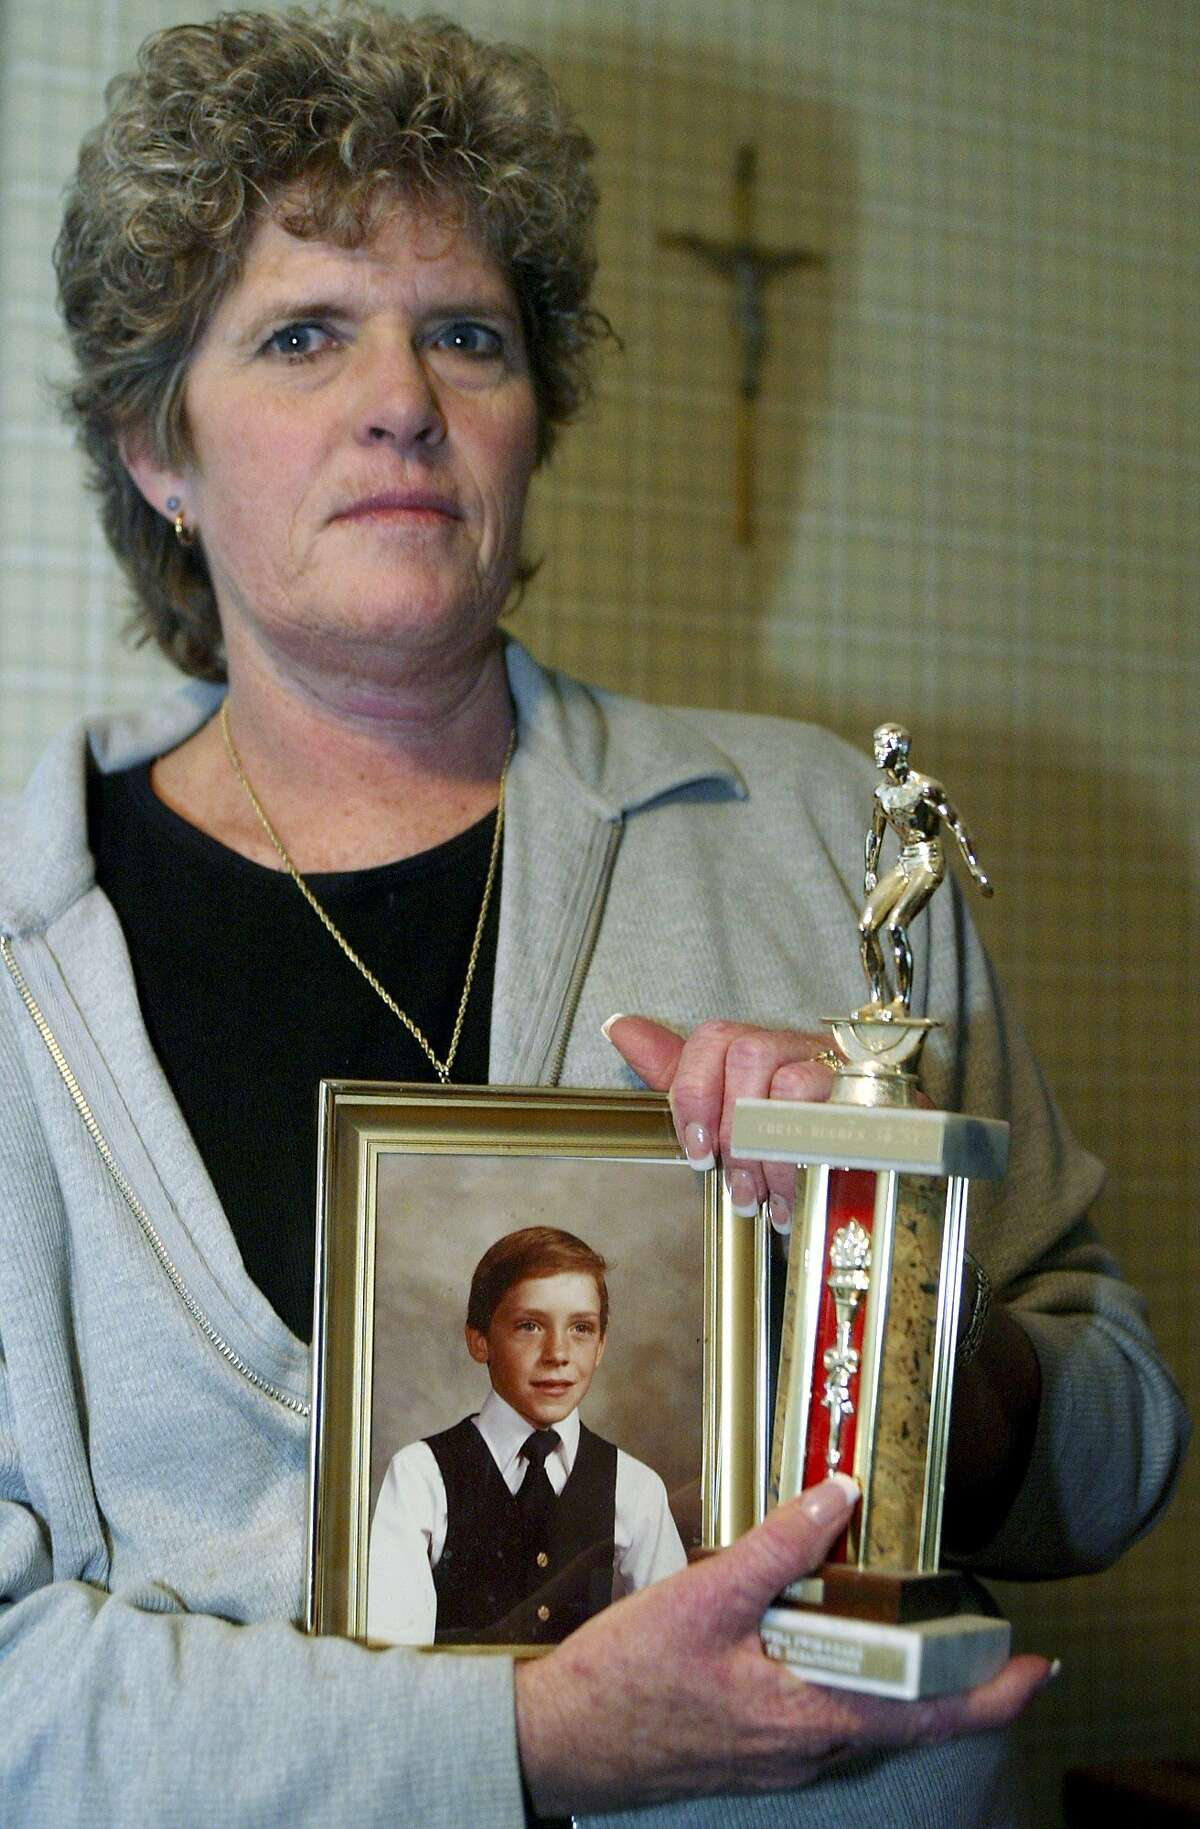 Mary Ann Hughes, poses with a photo of her late son Christopher, then six, Friday Jan.30, 2004, at her home in Chino Hills, Calif. On a June night in 1983, her son Christopher was having a sleepover at the sprawling, hill-top Chino Hills home of Douglas and Peggy Ryen with their two children, Jessica, 10, and Joshua, 8, when they were attacked by someone using a hatchet and a knife. Twenty-one years later, she said she has reserved seats to the convicted killer's execution. And she's keeping her fingers crossed last ditch efforts by celebrities such as Denzel Washington and Mike Farrell to keep Kevin Cooper alive won't get his Feb. 10 execution date postponed.(AP Photo/Damian Dovarganes) Mary Ann Hughes shows a photo of her son, Chris, 6 years old when the picture was taken, at her home in Chino Hills (San Bernardino County). Chris and three others were killed in June 1983.